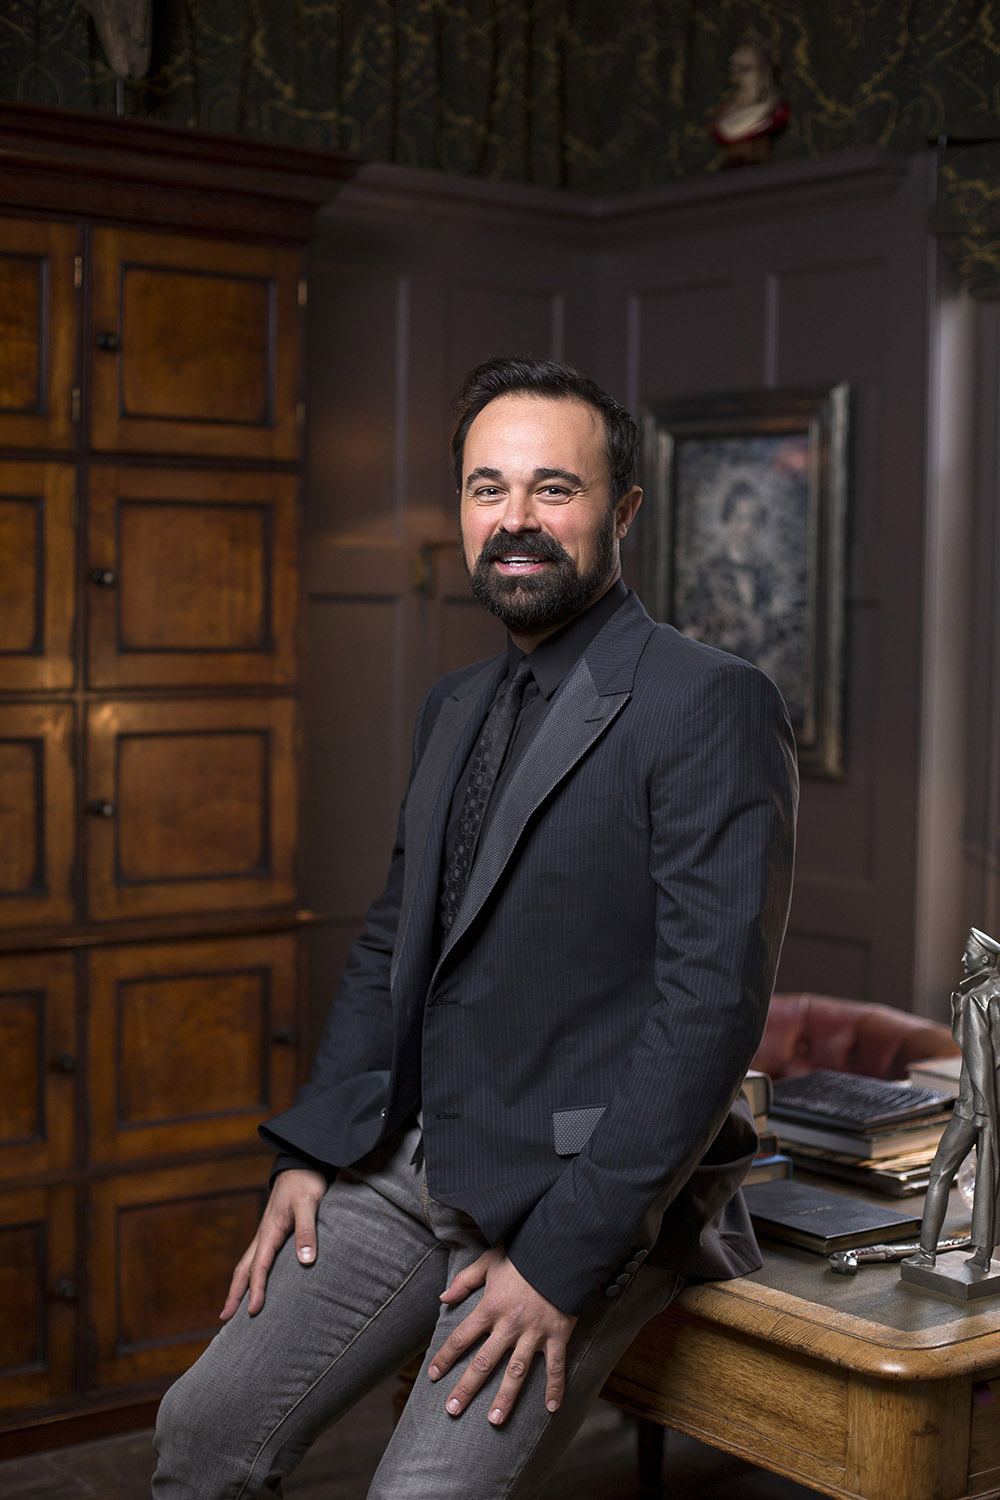 Portraits of Evgeny Lebedev at his residence Stud House, Hampton Court, London.